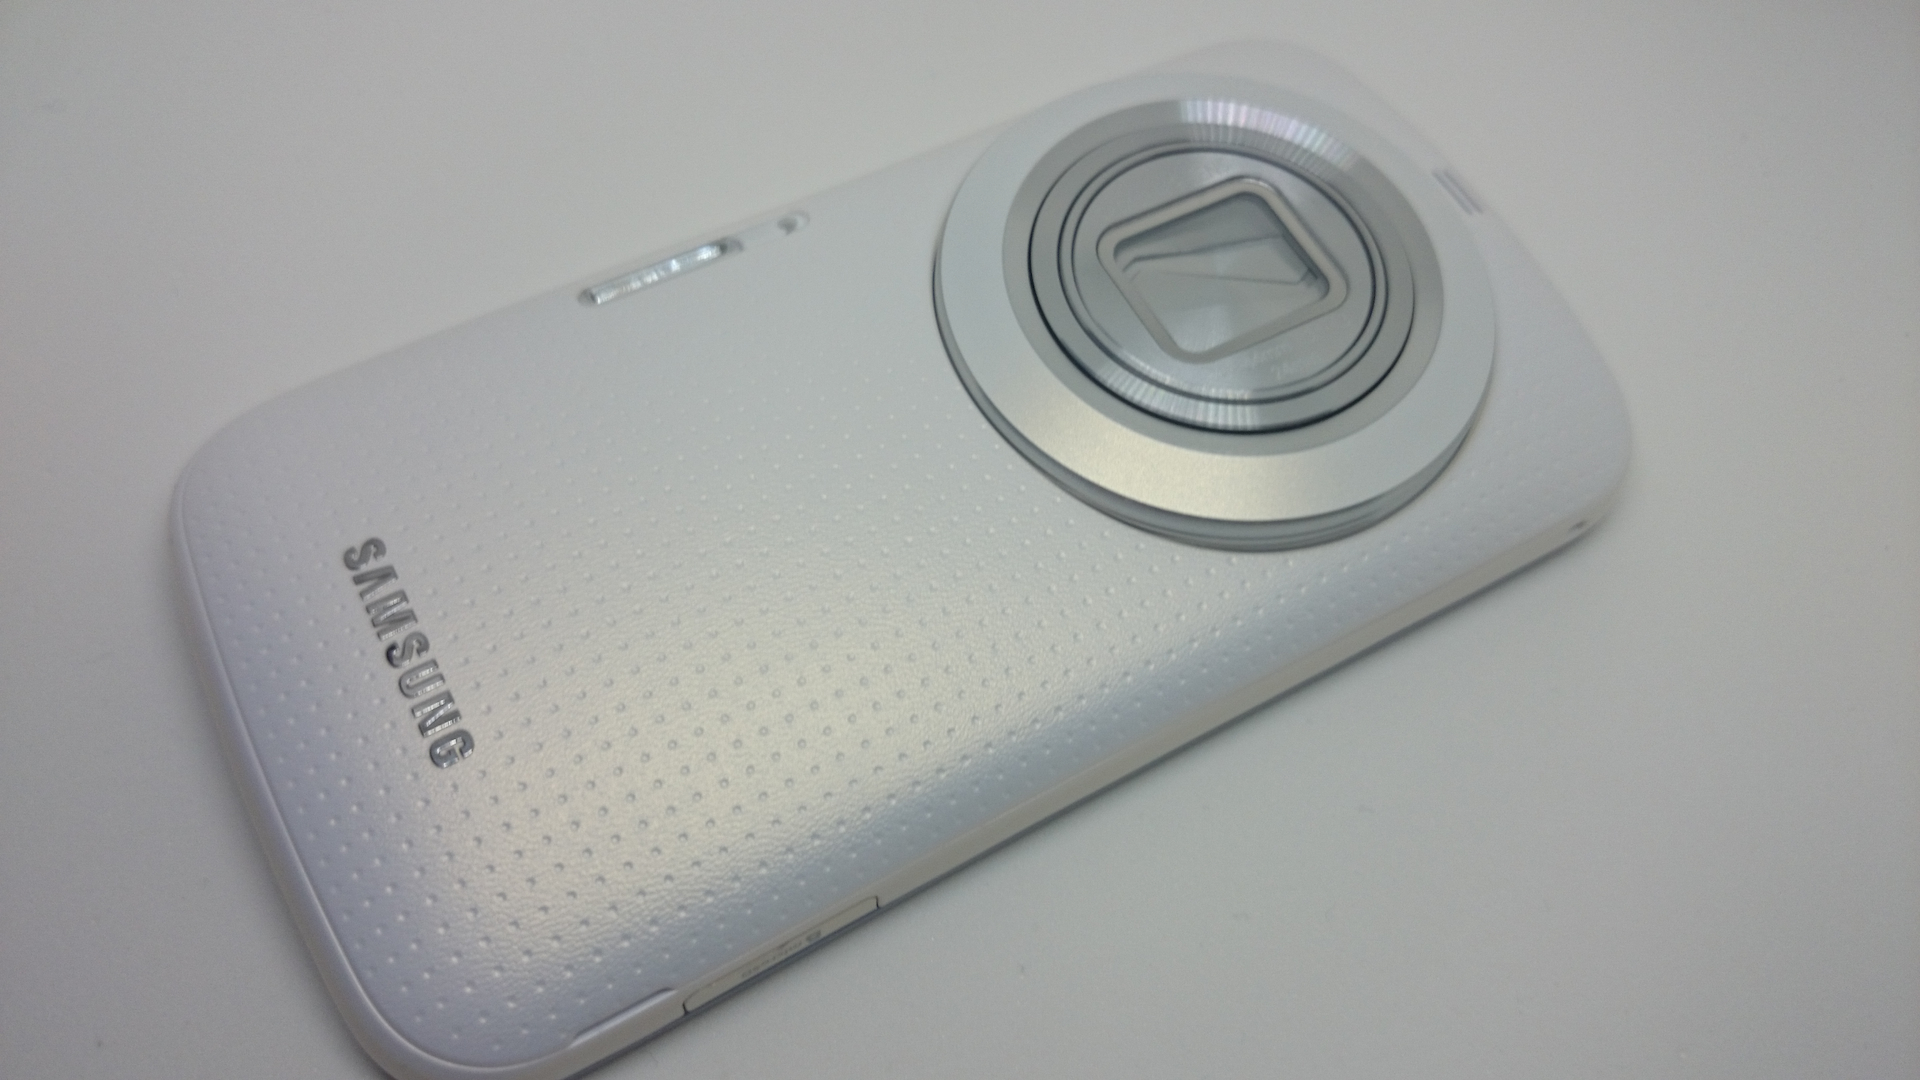 Samsung Galaxy K Zoom Review Coolsmartphone 8gb White